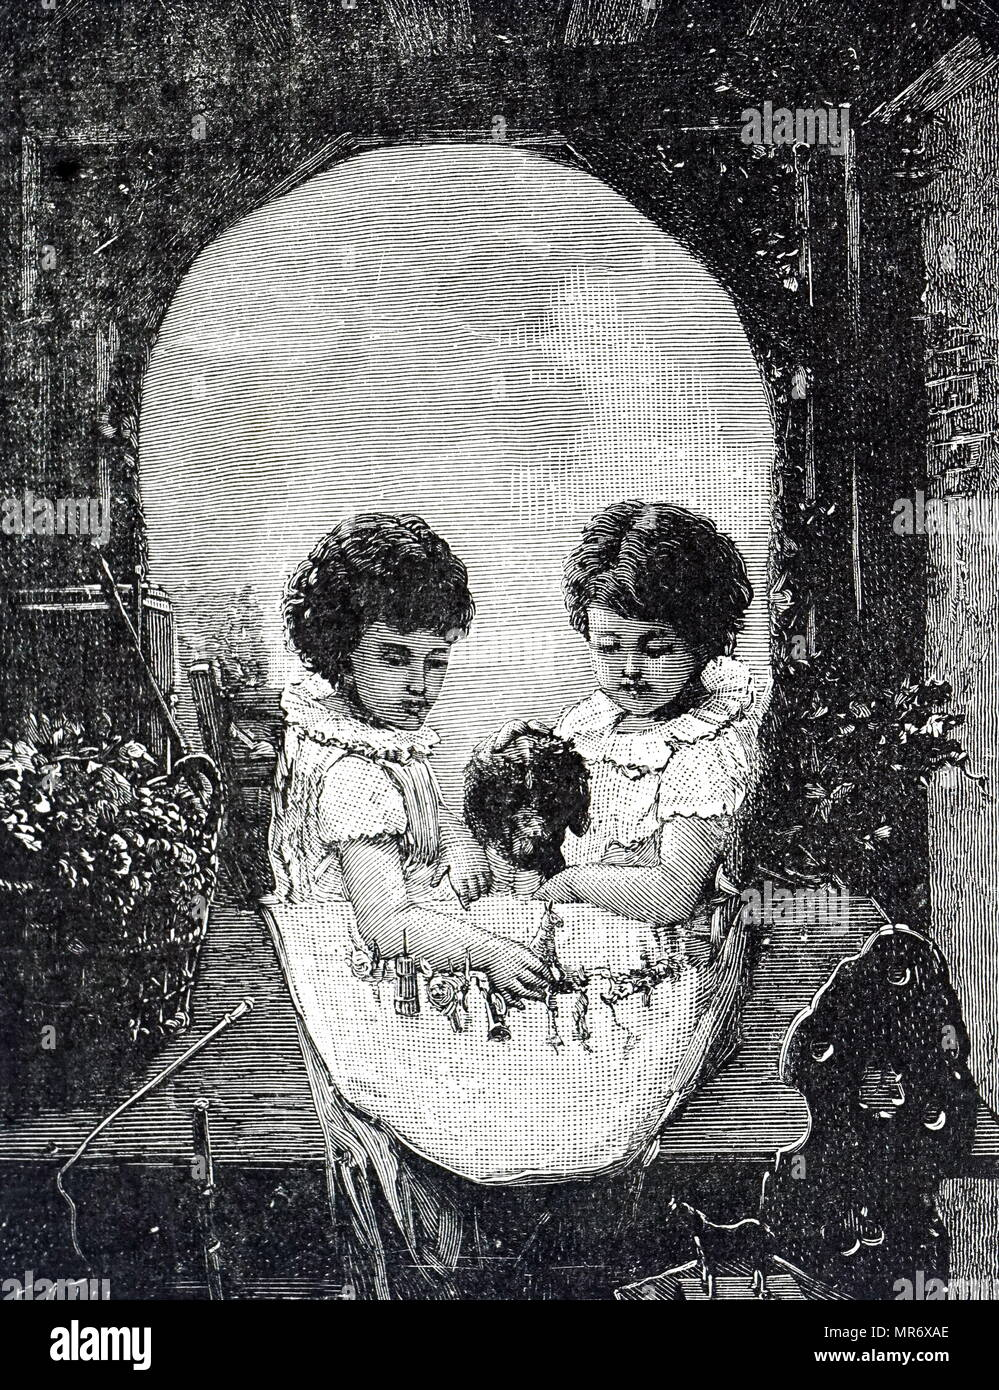 Example of an optical illusion - two happy children, framed by an arch play at a table with their pet dog. Viewed from a few feet away, or with half closed eyes, the children disappear and the picture becomes a skull. Dual picture by . Dated 19th century - Stock Image